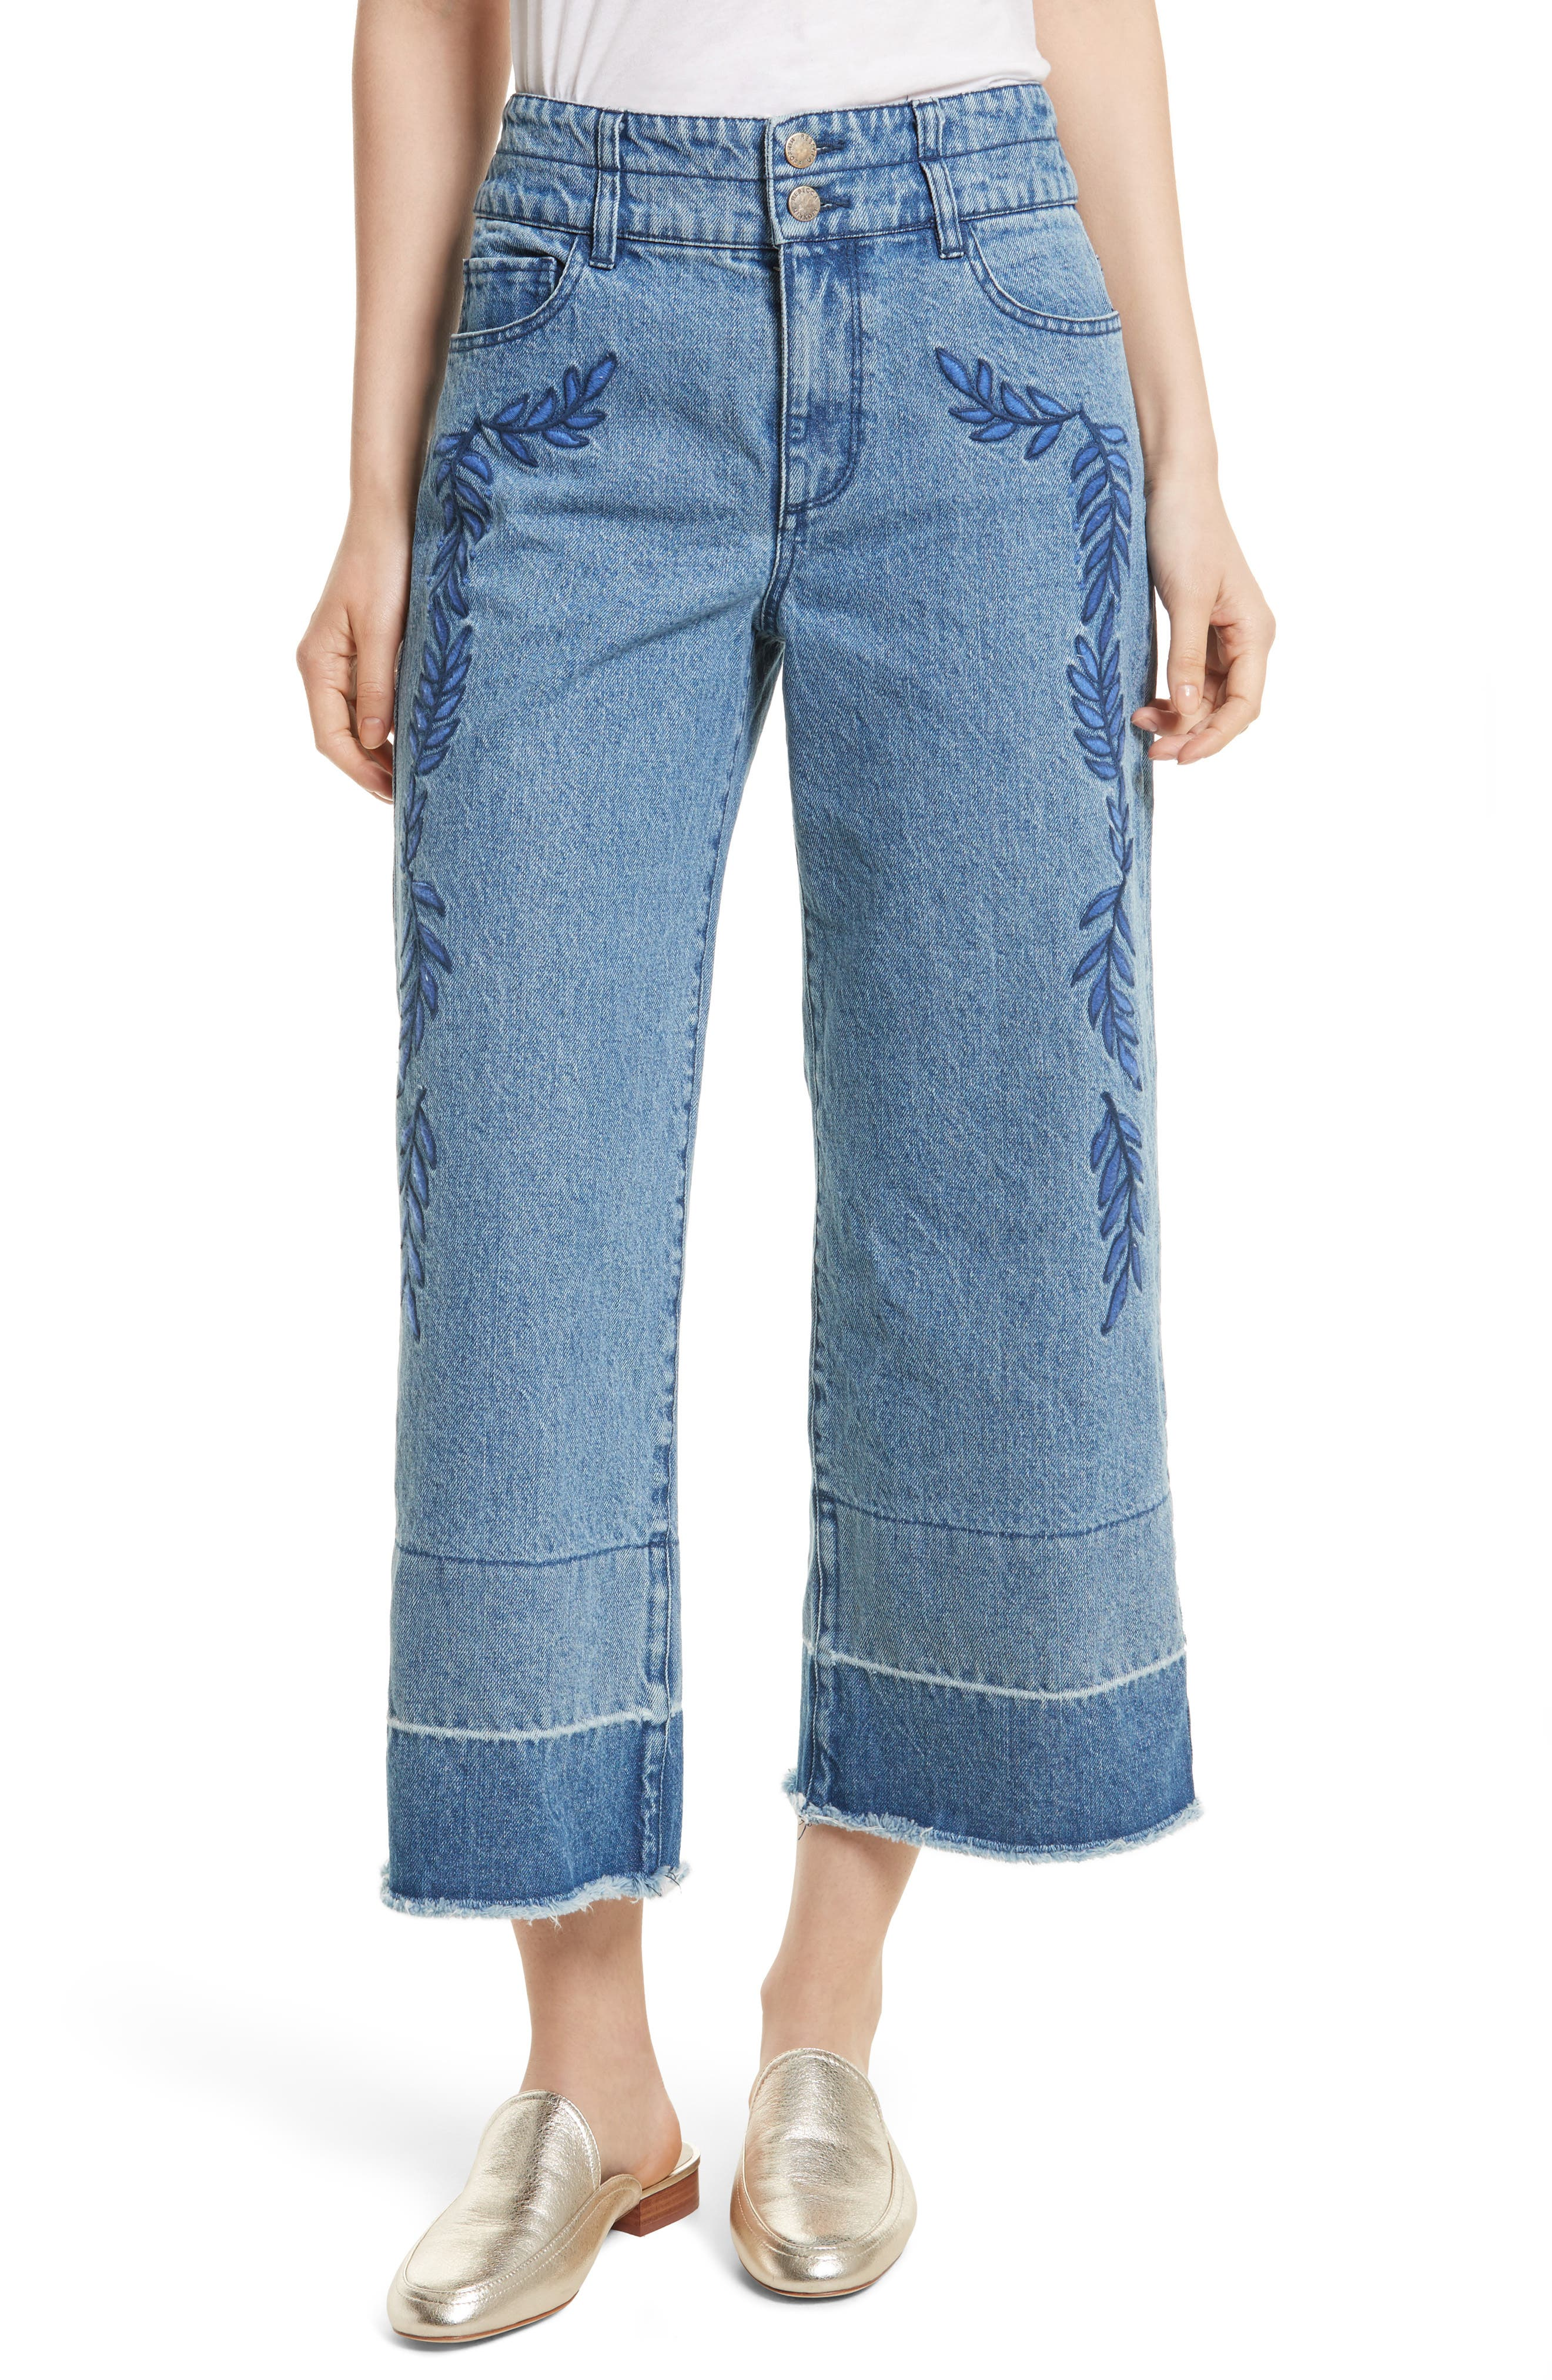 Starlight High Waist Crop Wide Leg Jeans,                             Main thumbnail 1, color,                             400